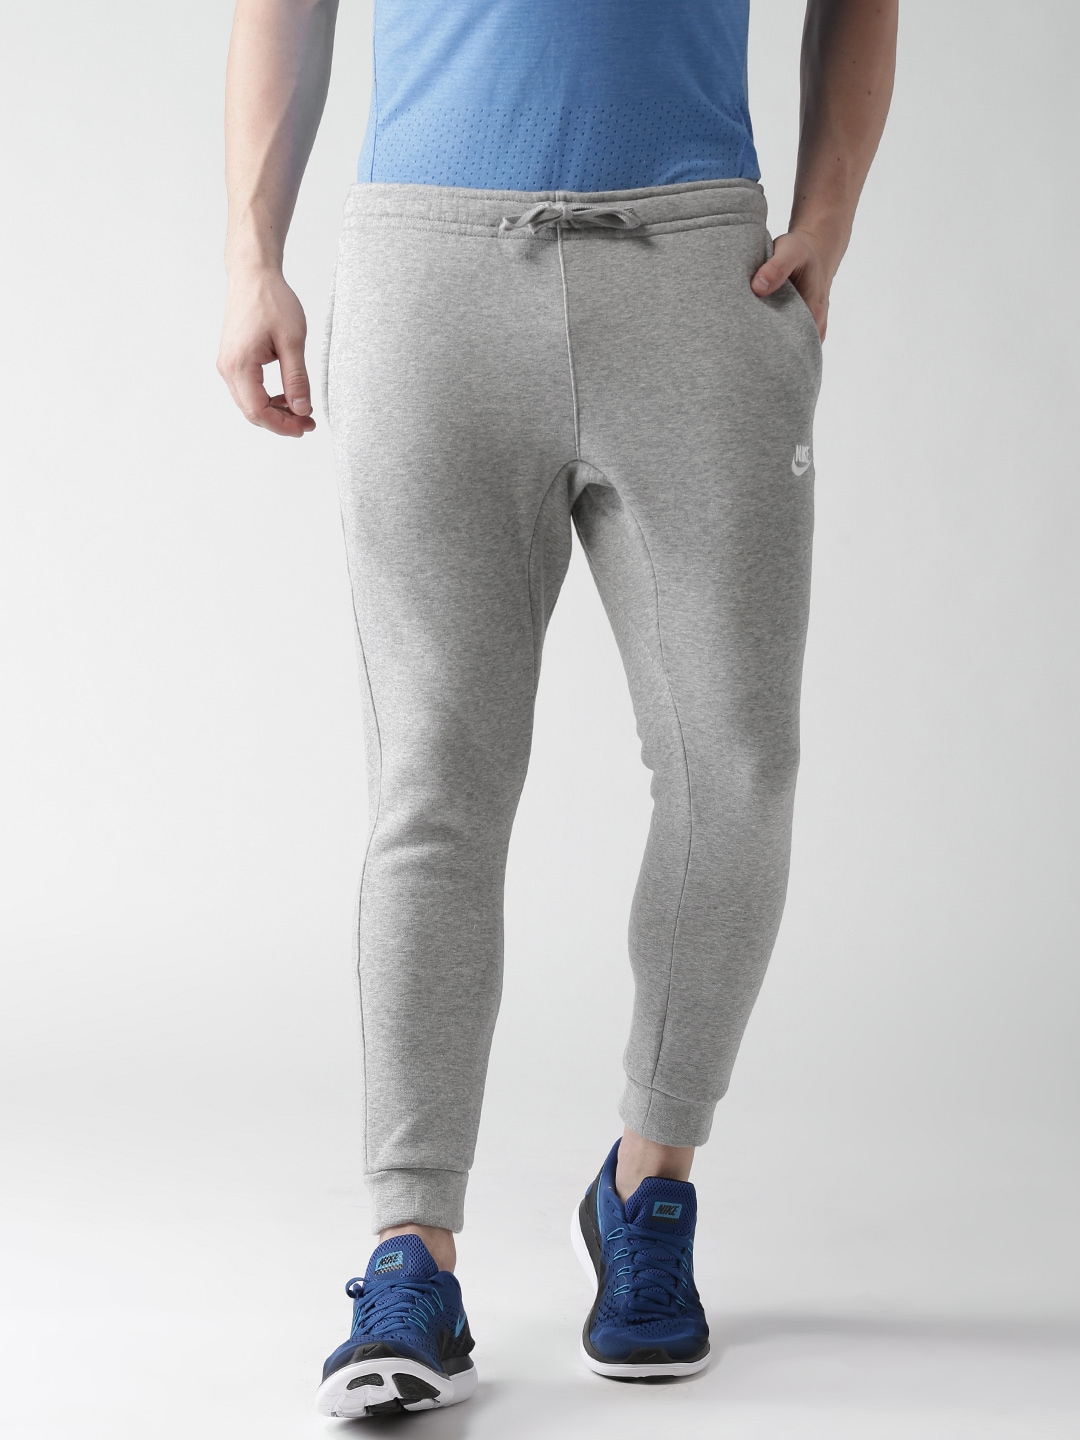 48bd9d3d0523 Nike Grey Melange AS M NSW MODERN JOGGER FT Joggers. This product is  already at its best price